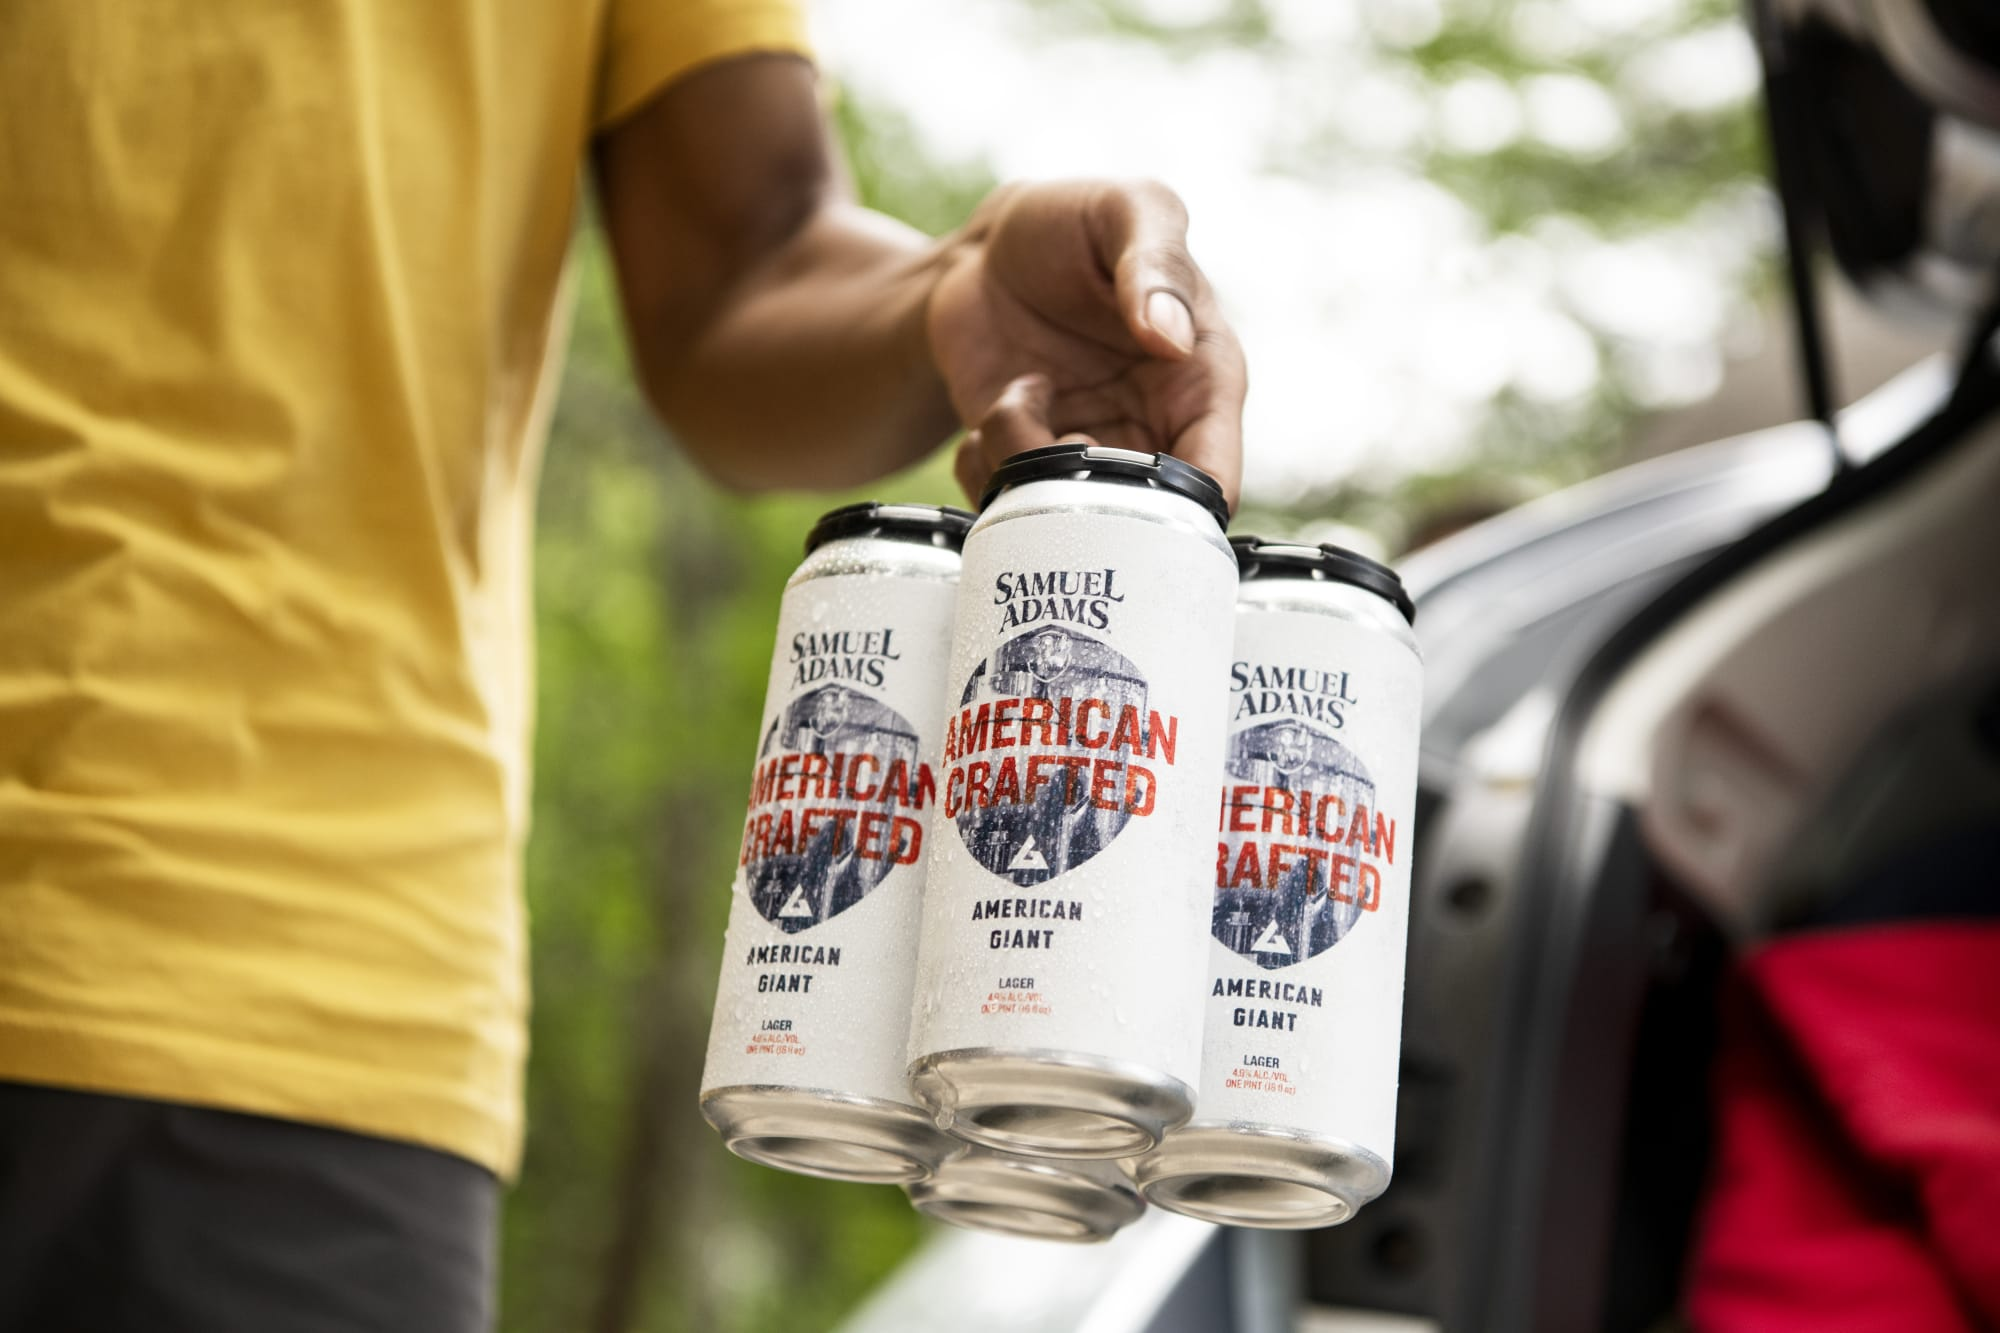 All-American beers that need to be part of summer gatherings